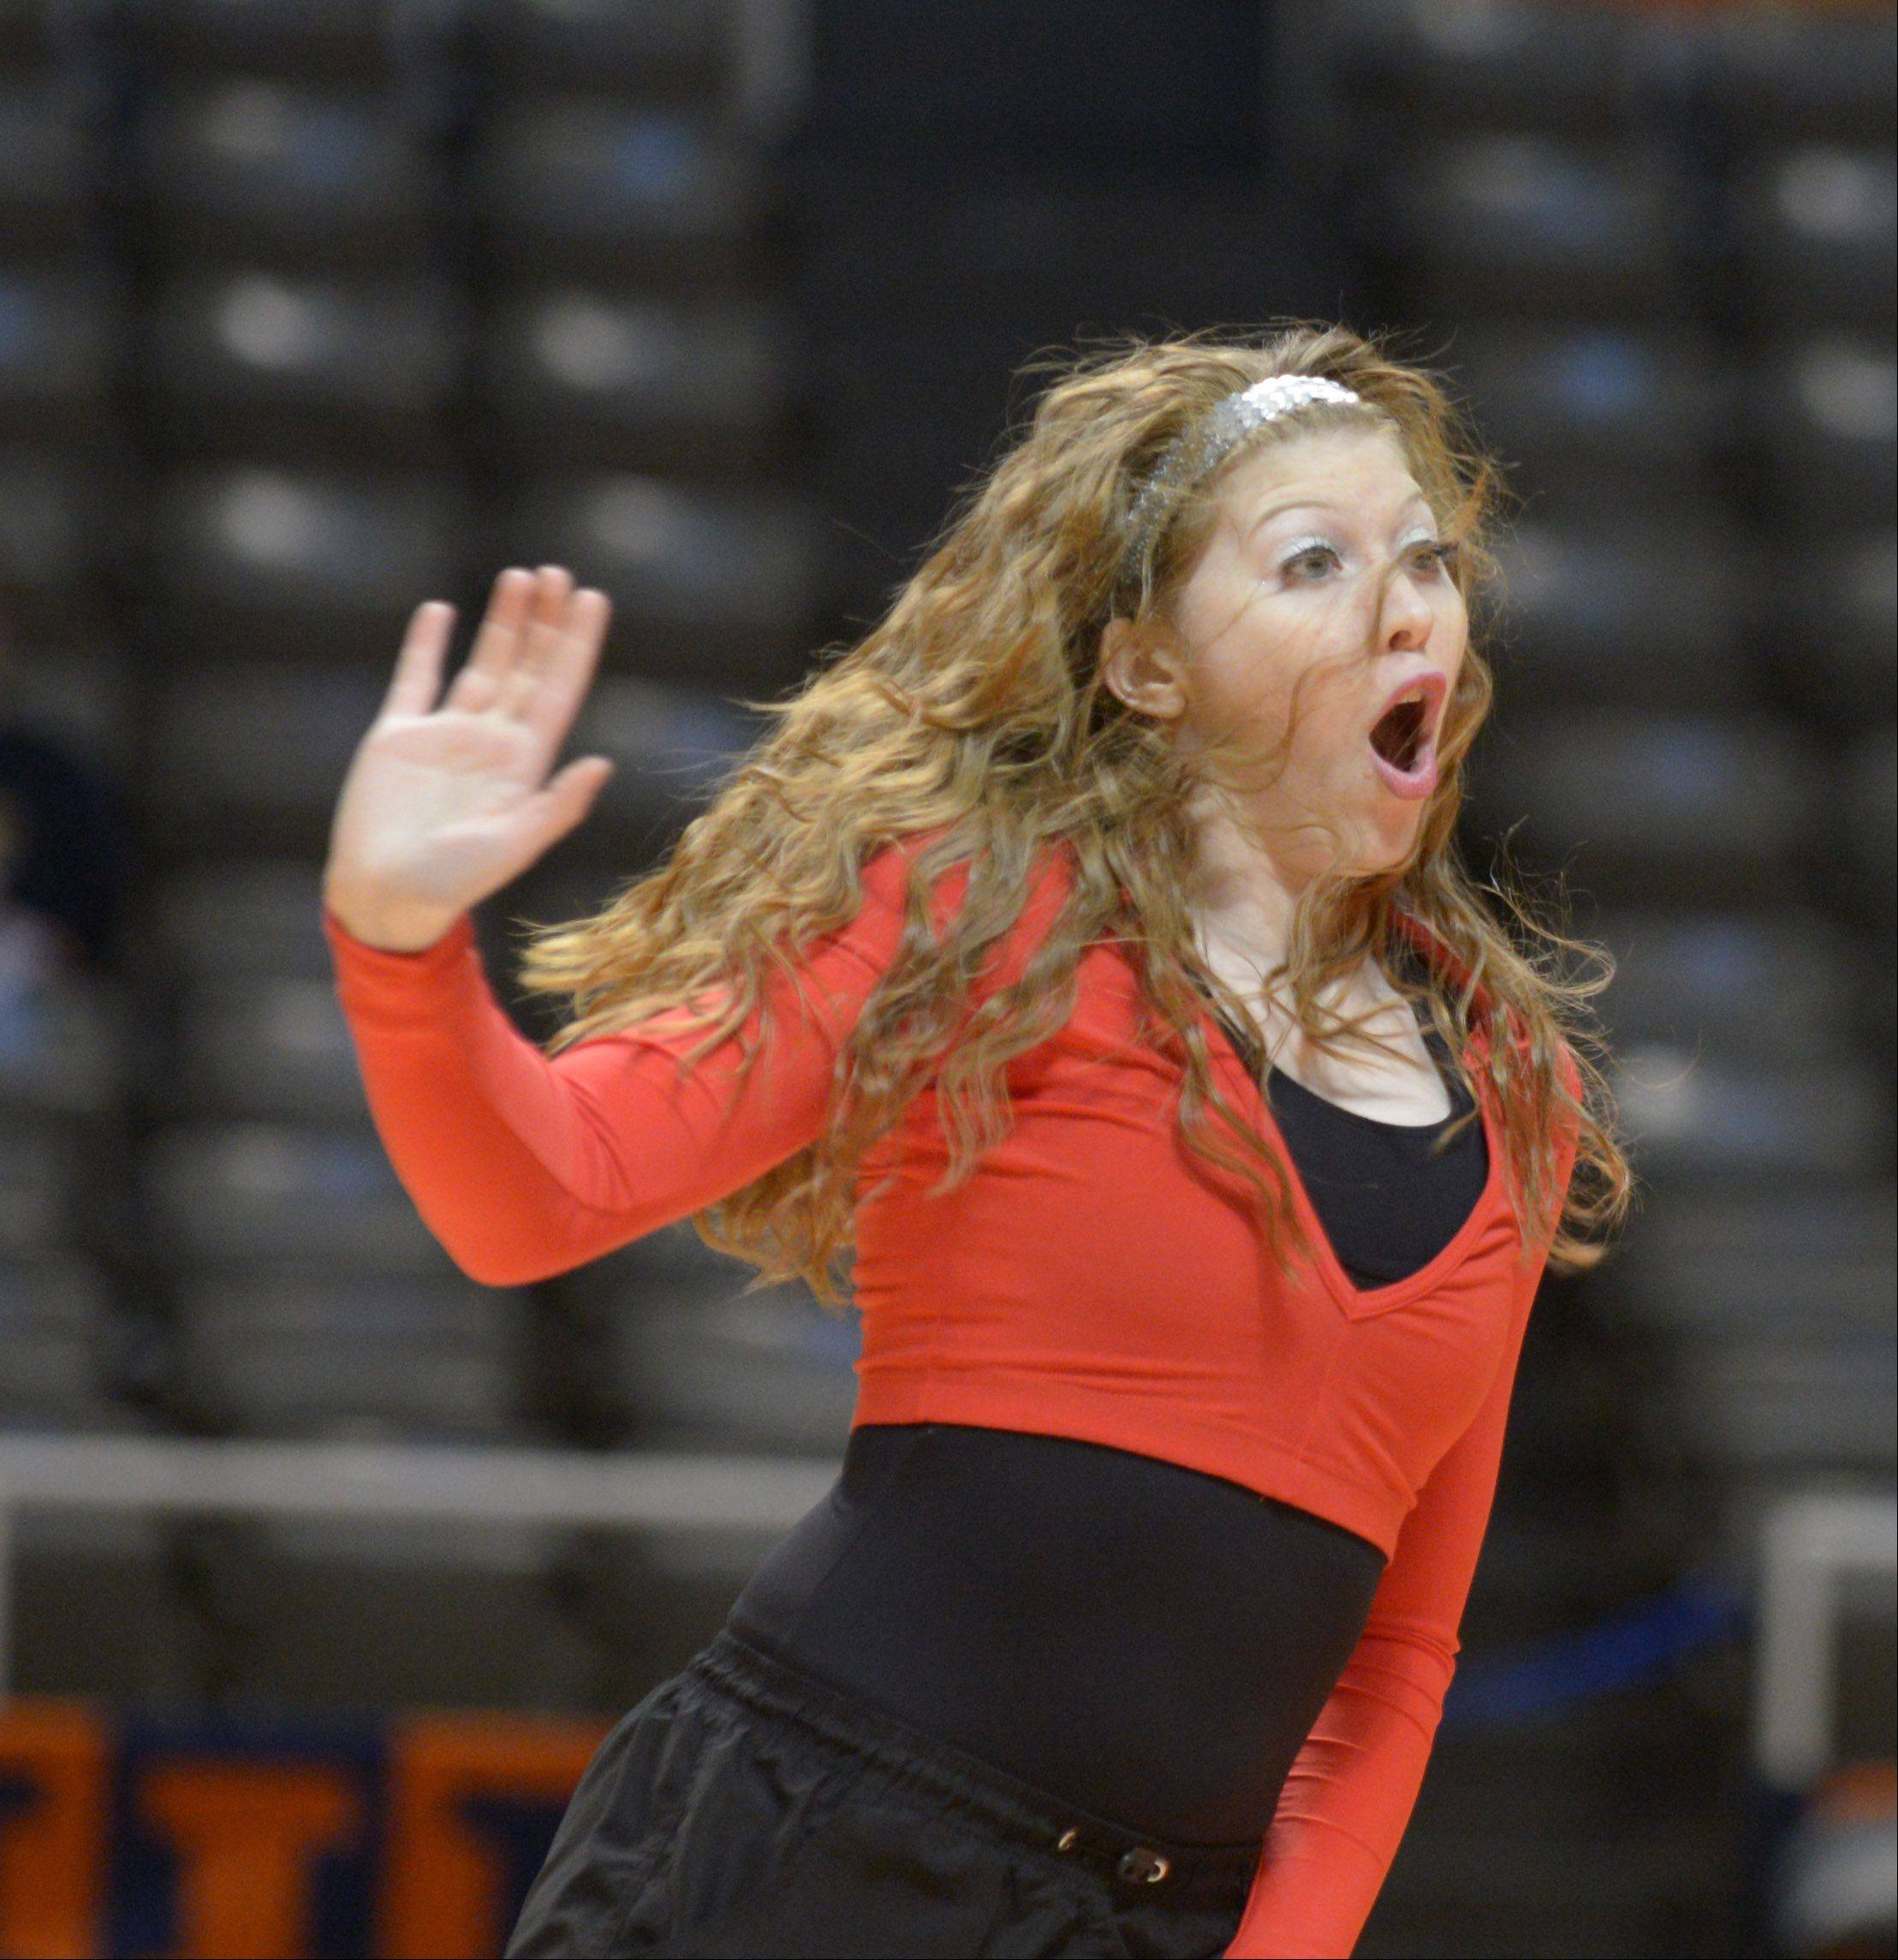 Victoria Parenti of Fenton takes part in the solo rounds at Illinois Drill Team Association State Championships, held at University of Illinois Assembly Hall Saturday.